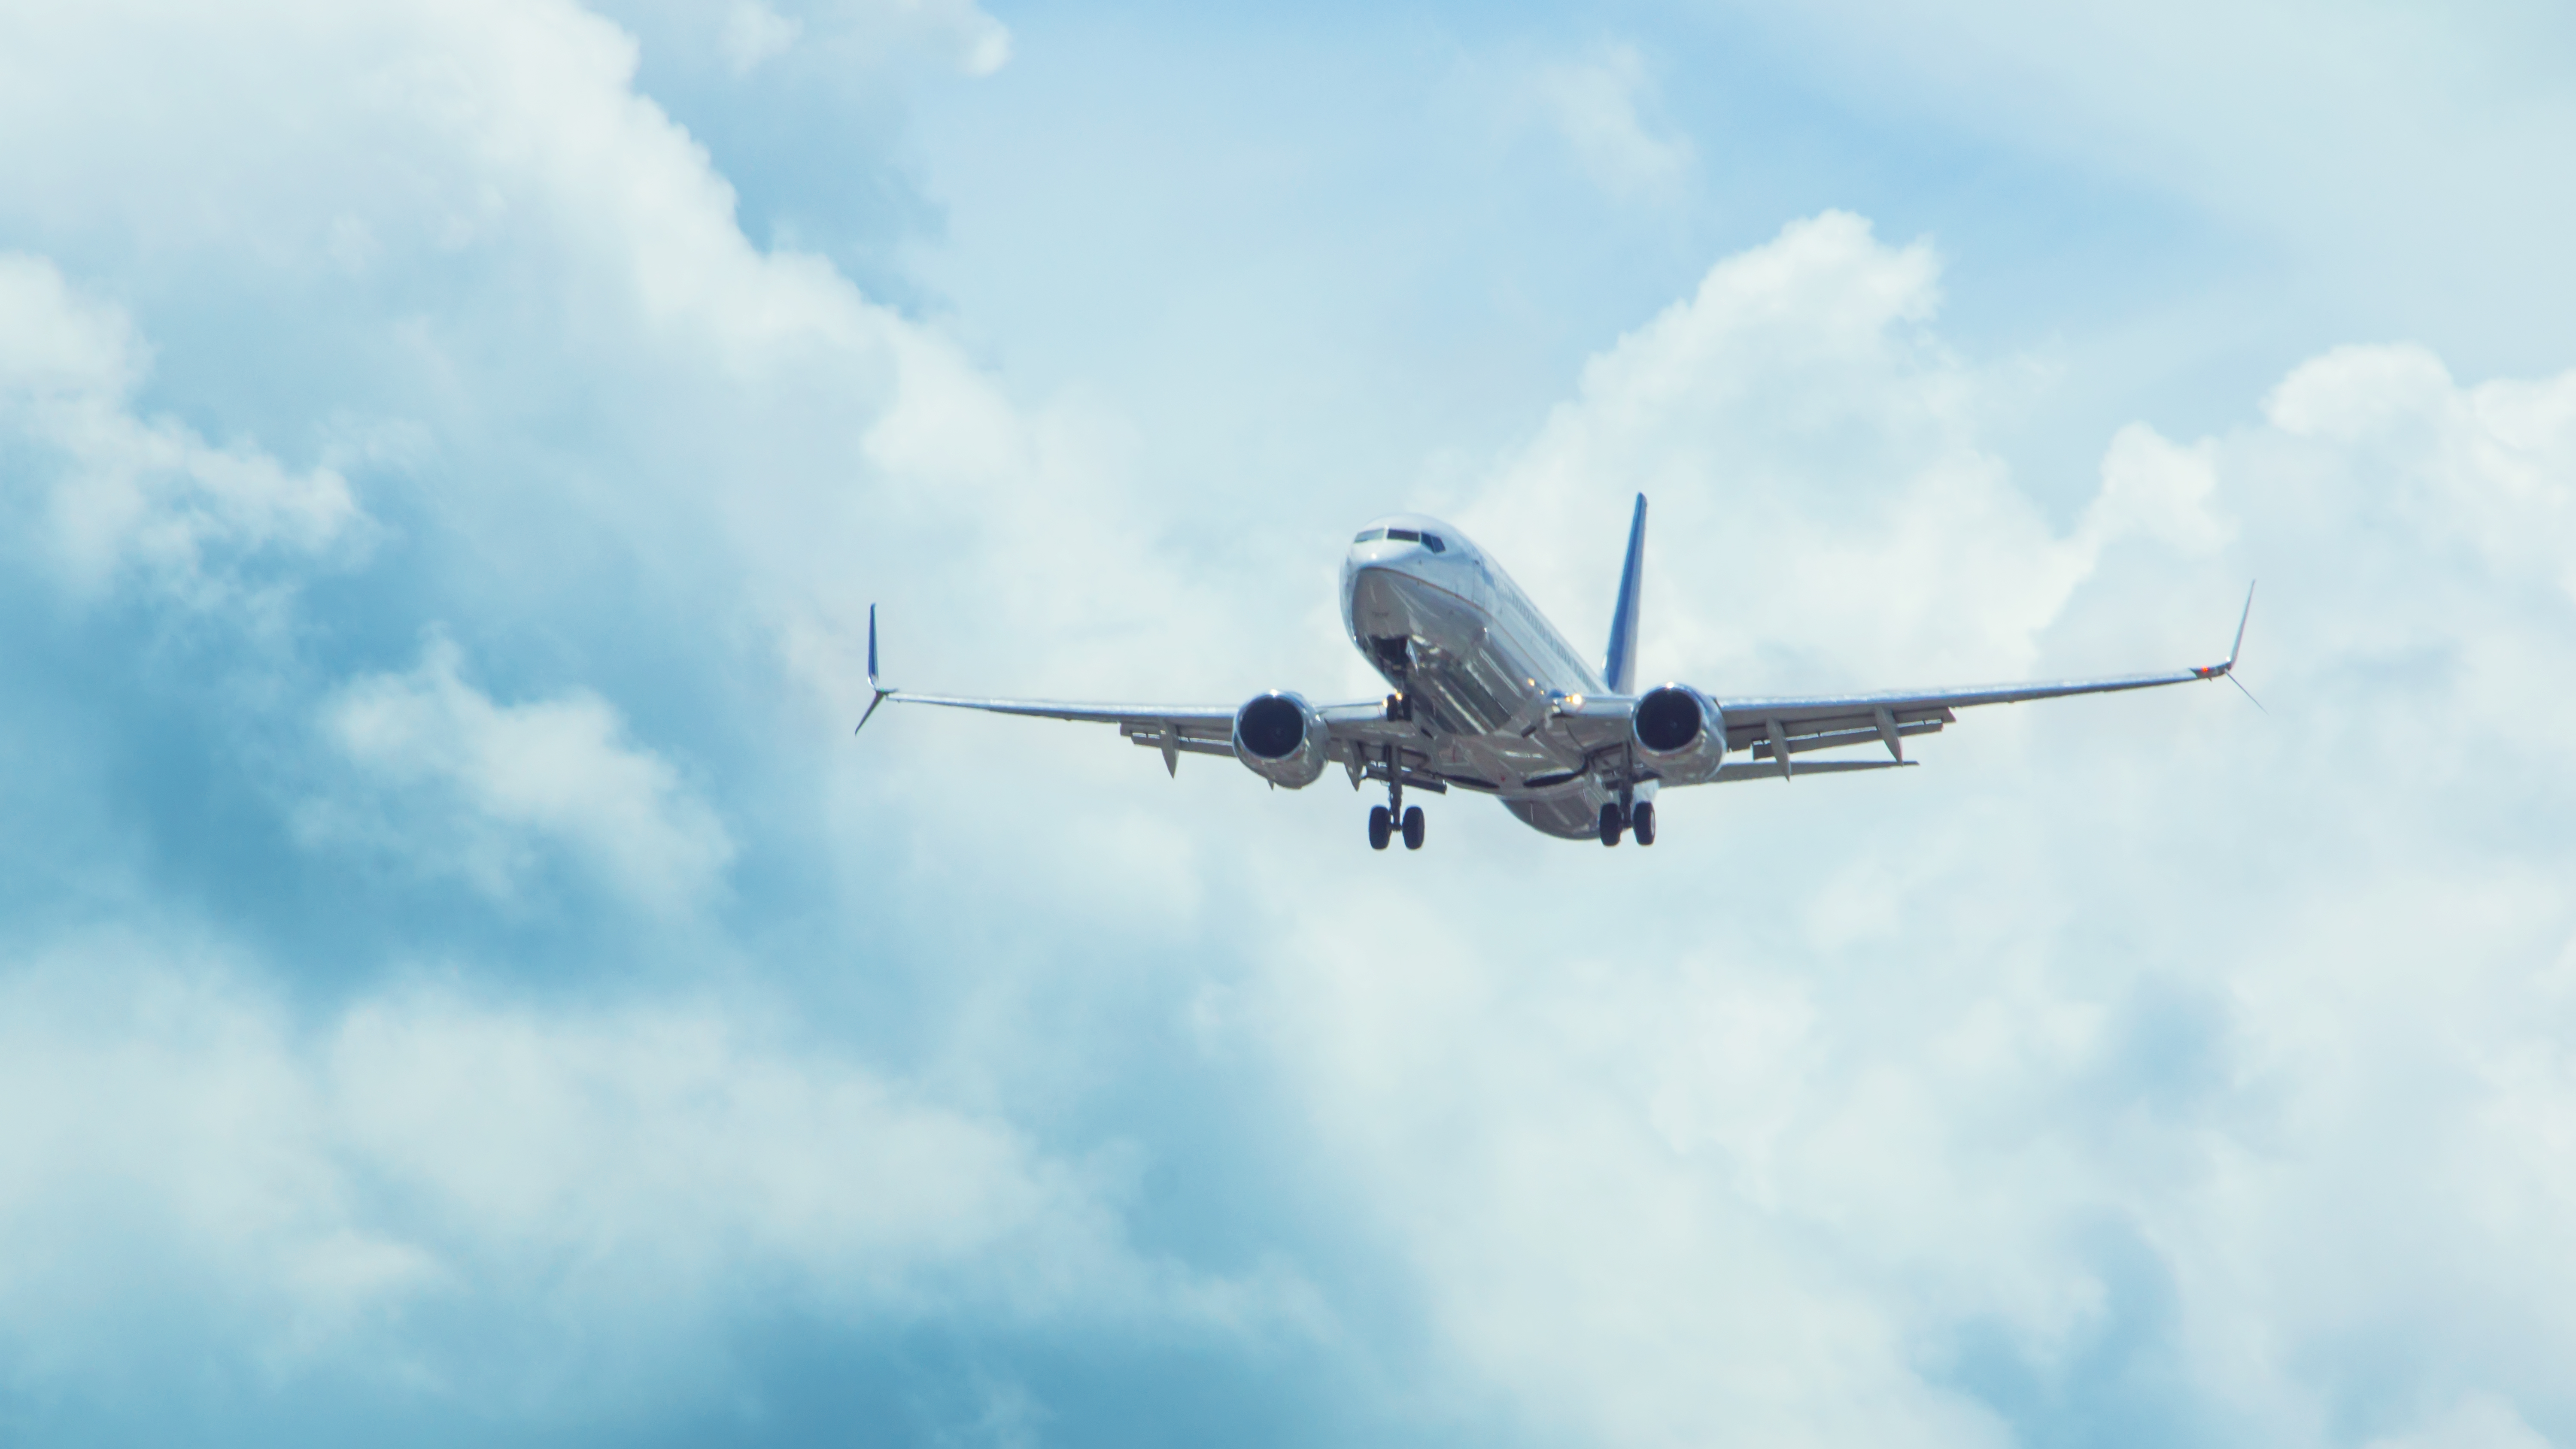 Why Is Jet Lag Worse From West to East?